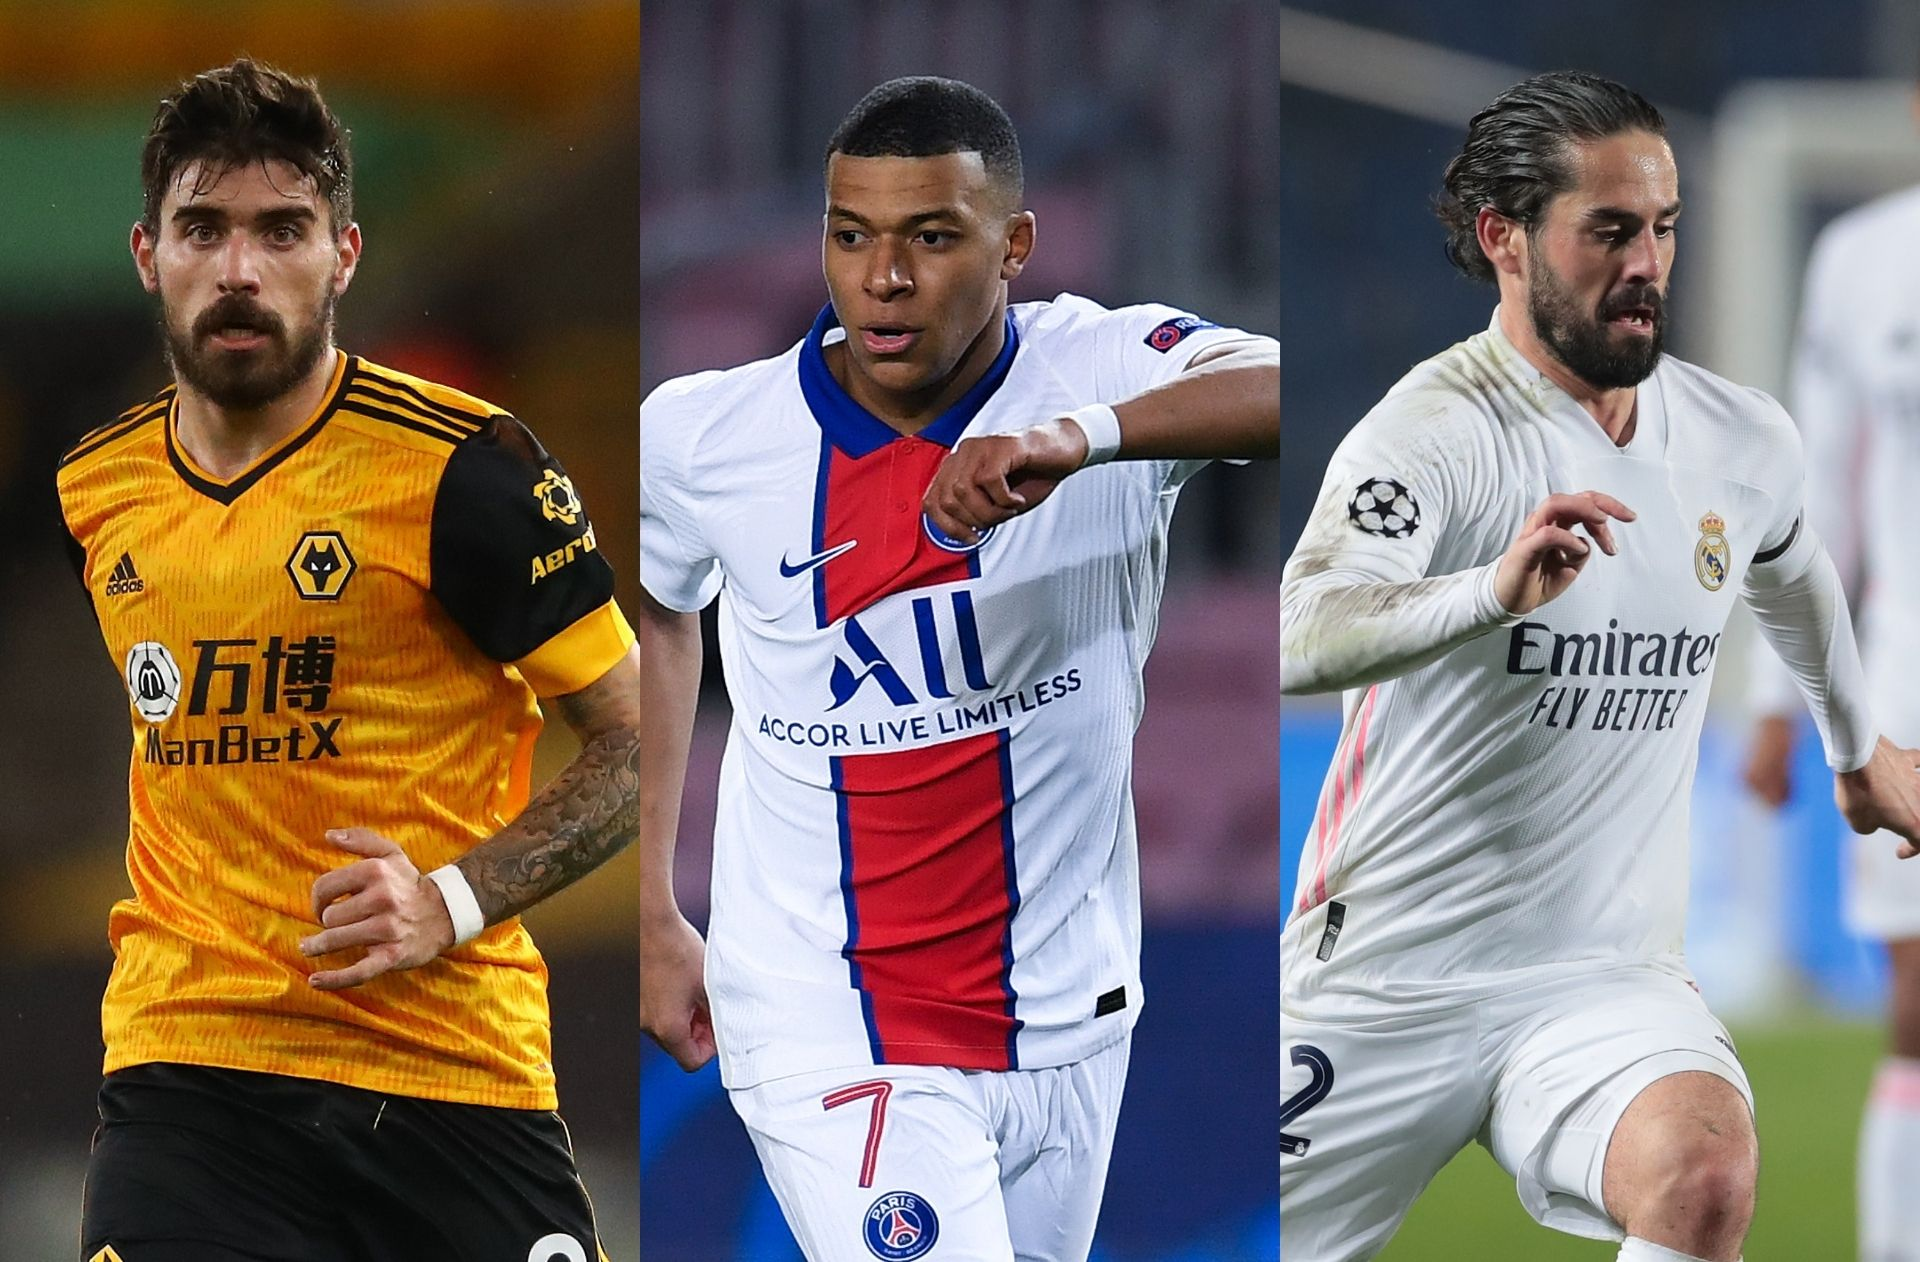 Ruben Neves of Wolves, Kylian Mbappe of PSG, Isco of Real Madrid